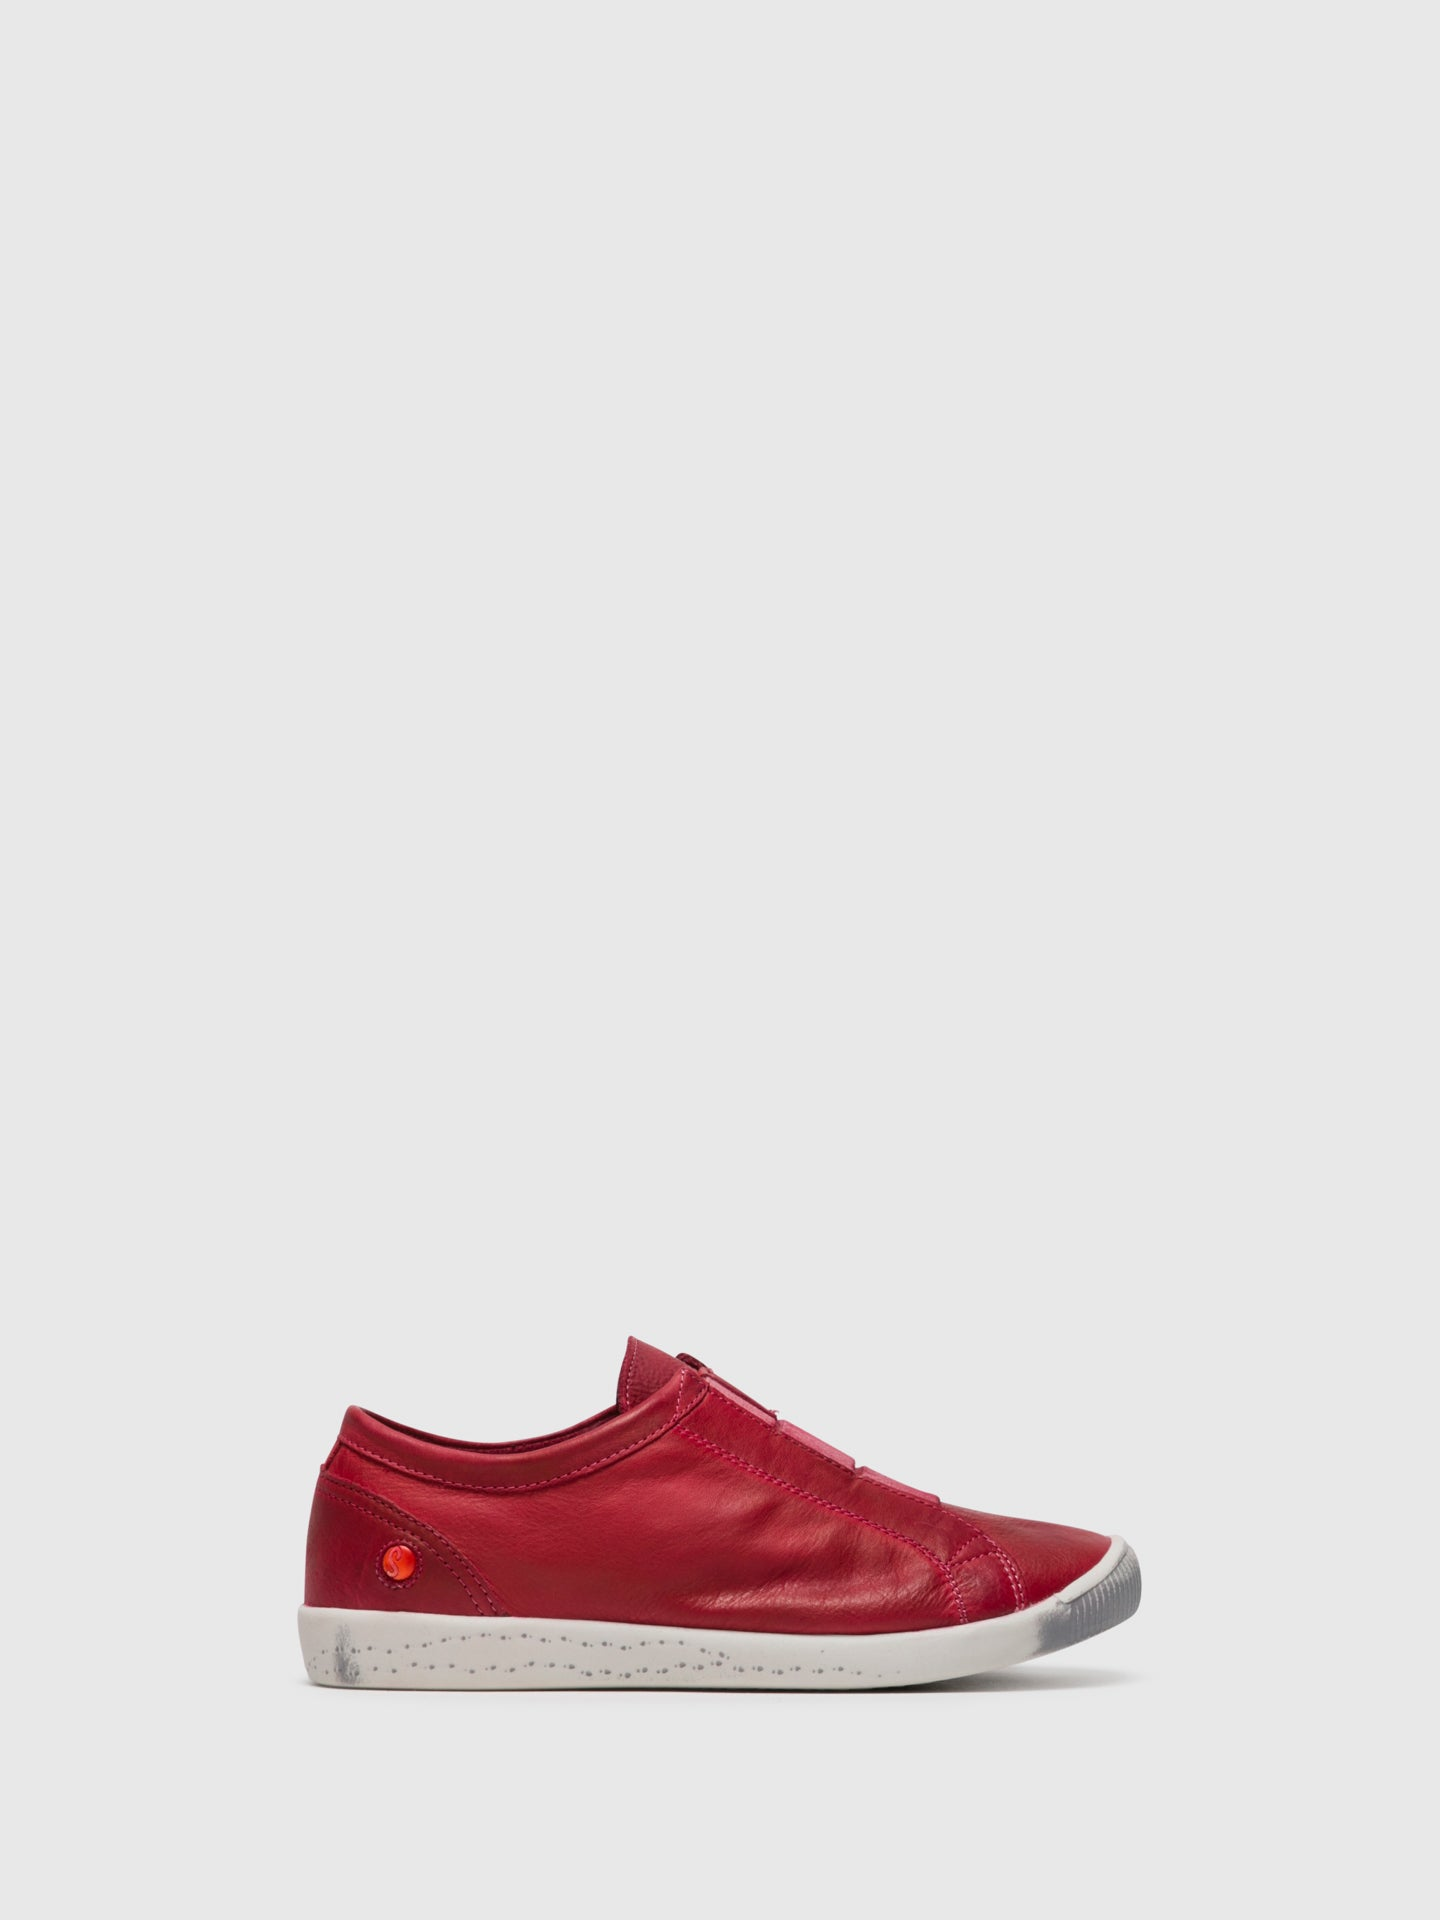 SOFTINOS Zapatillas con Estilo Slip-on en color Rojo